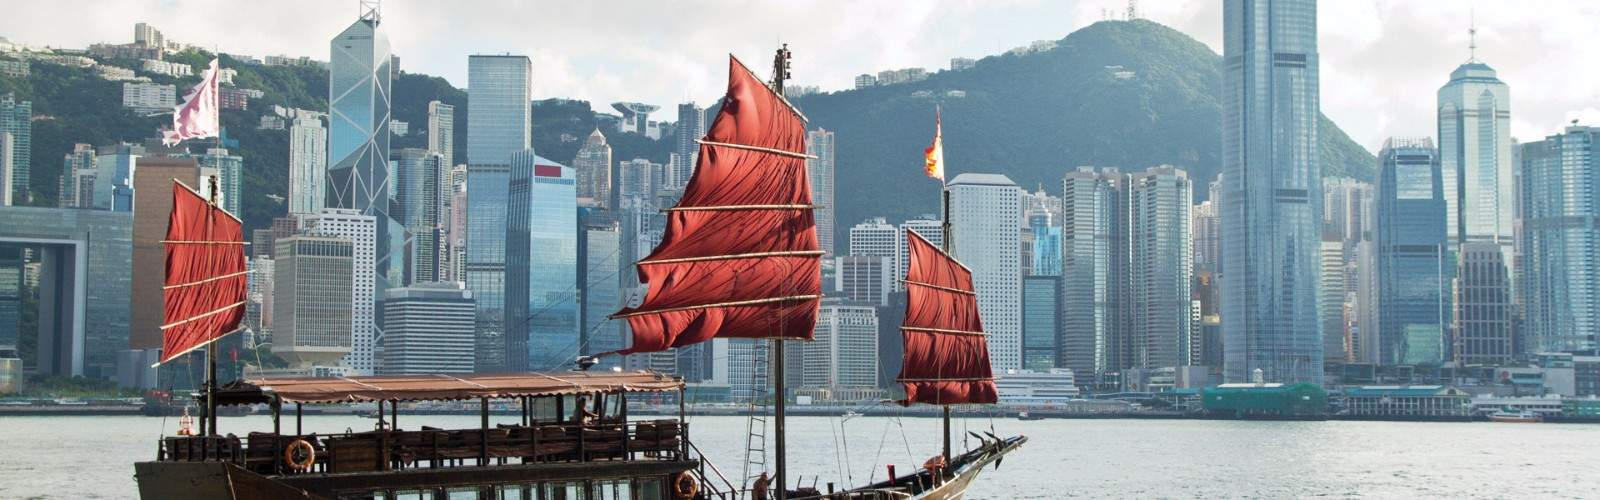 Hong Kong in Focus Tour | Wendy Wu Tours